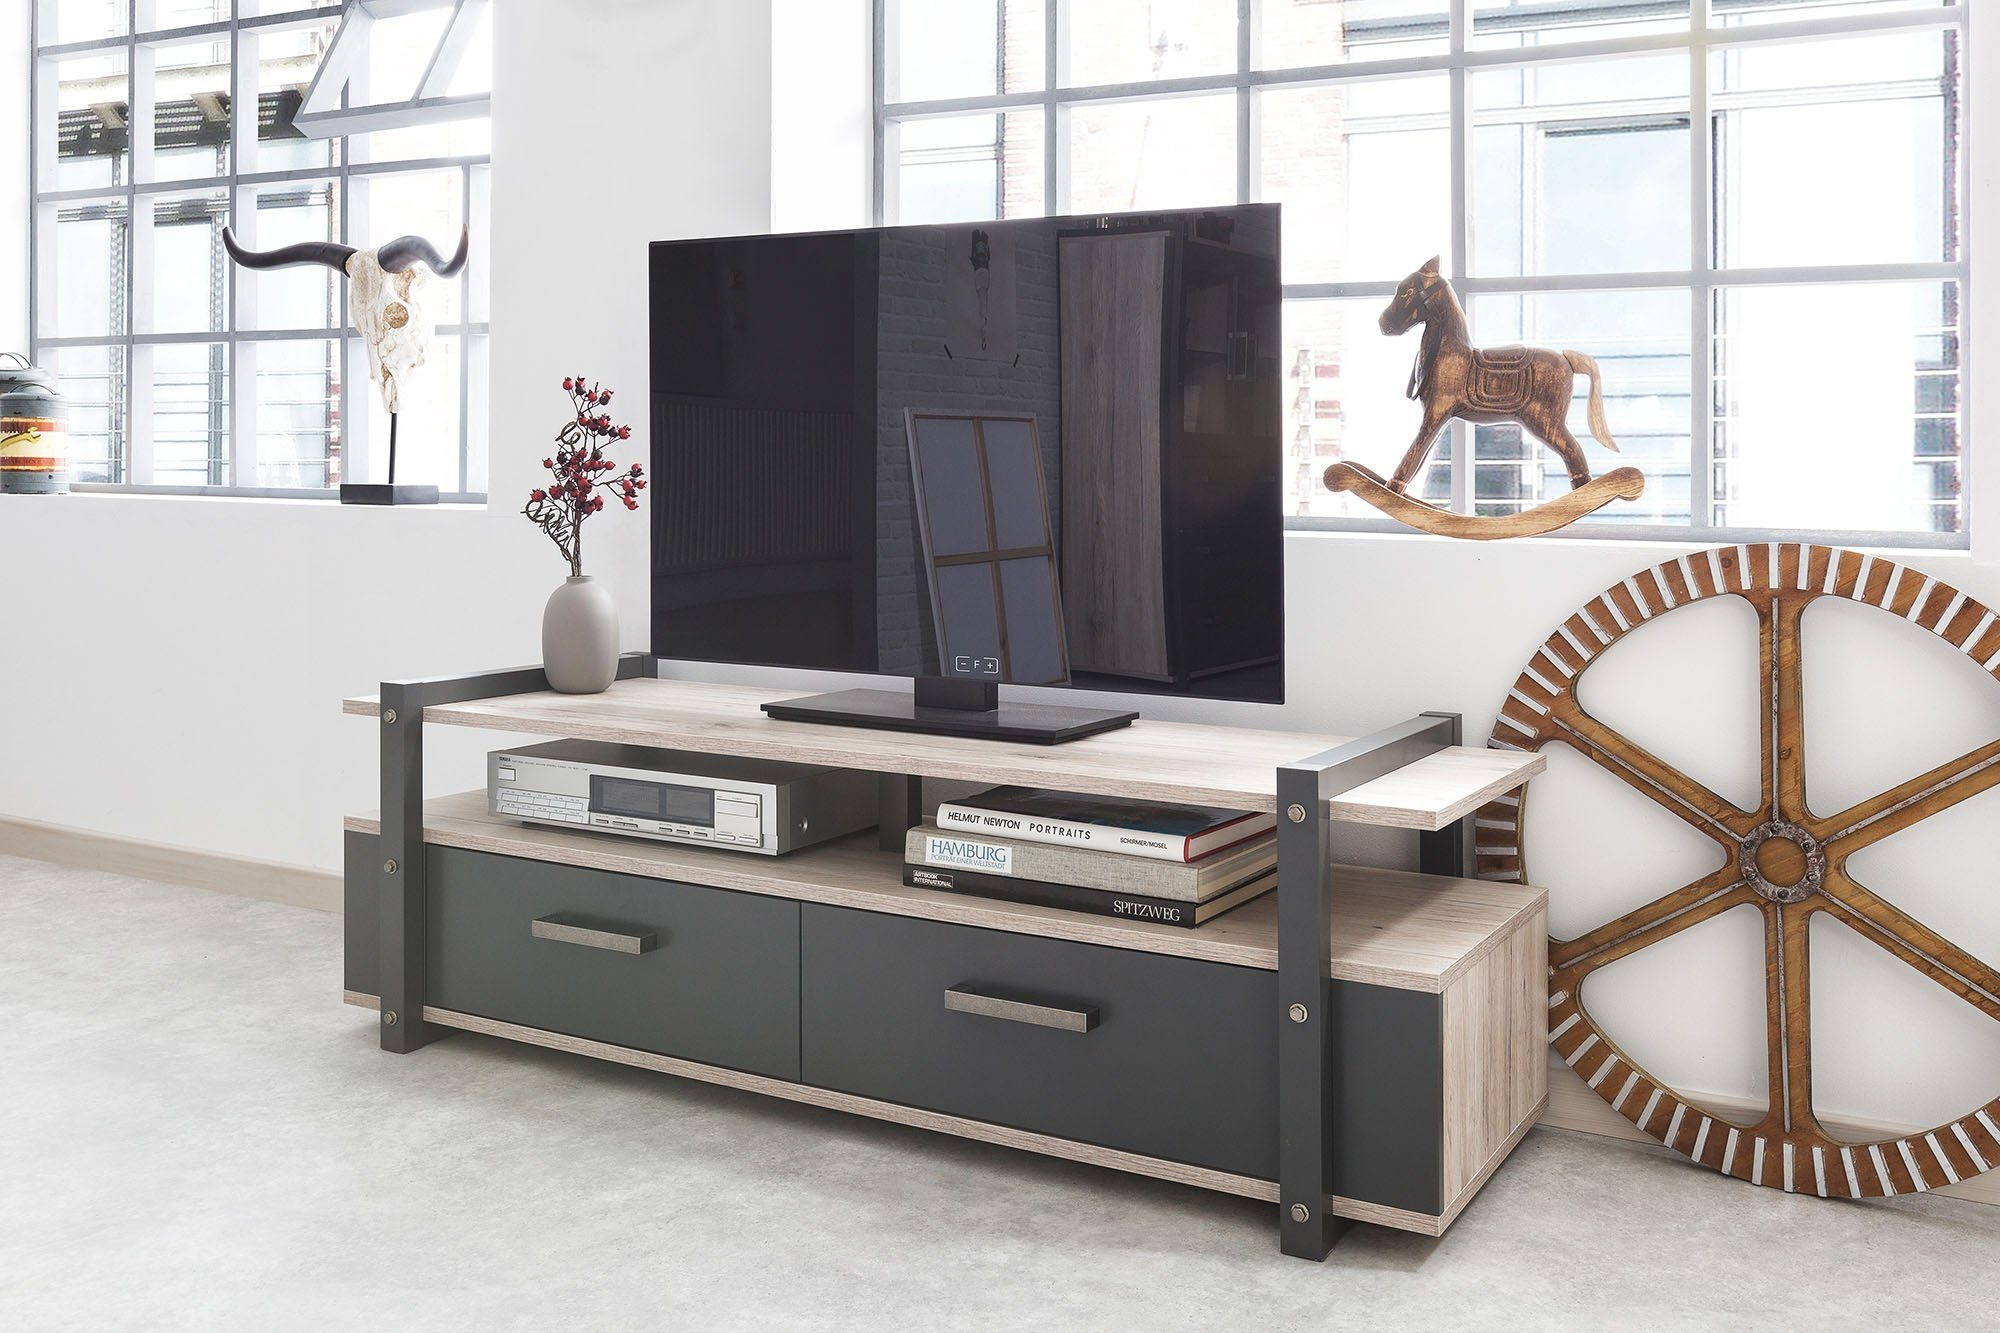 Tv Board Industrial Newroom Lowboard »robin« Eiche Sorrento Tv Board Vintage Industrial Tv Lowboard Highboard Anrichte Wohnzimmer Schlafzimmer Online Kaufen Newroom Tv Boards, - Komnit Store